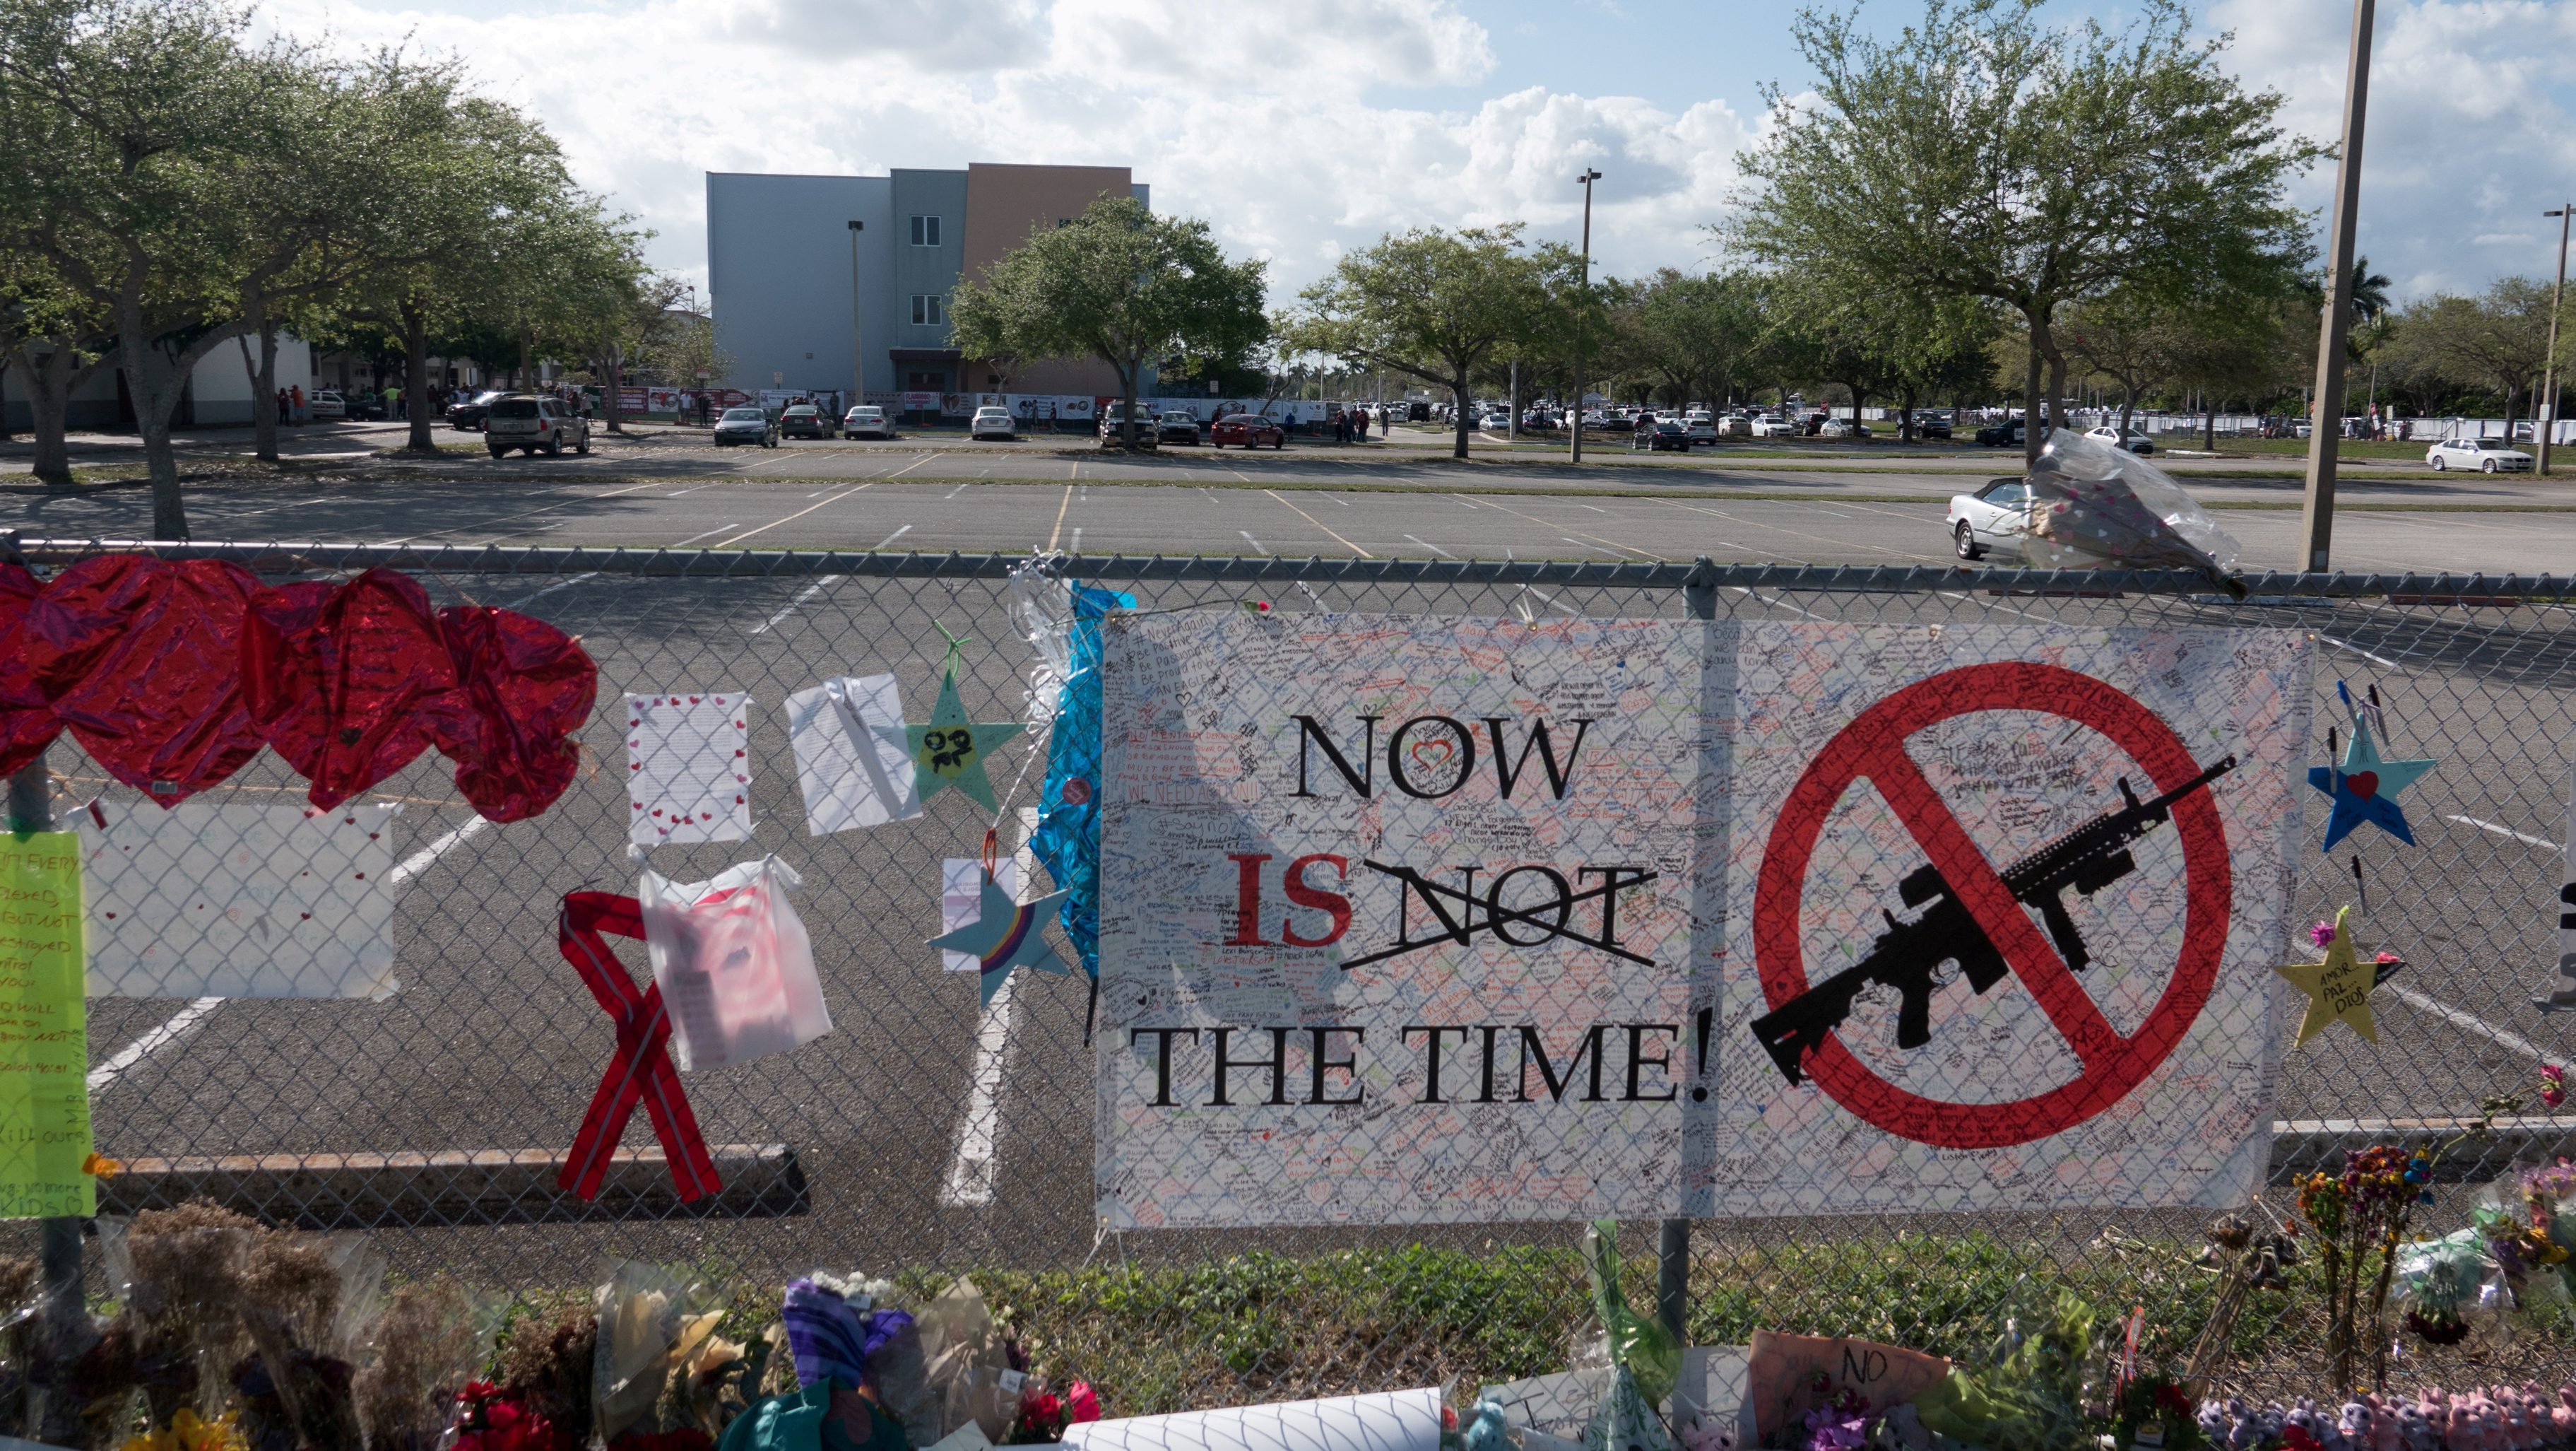 FILE PHOTO: Messages, posted on a fence, hang, as students and parents attend a voluntary campus orientation at the Marjory Stoneman Douglas High School, for the coming Wednesday's reopening, following last week's mass shooting in Parkland, Florida, U.S., February 25, 2018. REUTERS/Angel Valentin/File photo NO RESALES. NO ARCHIVES - RC11BE5B3210